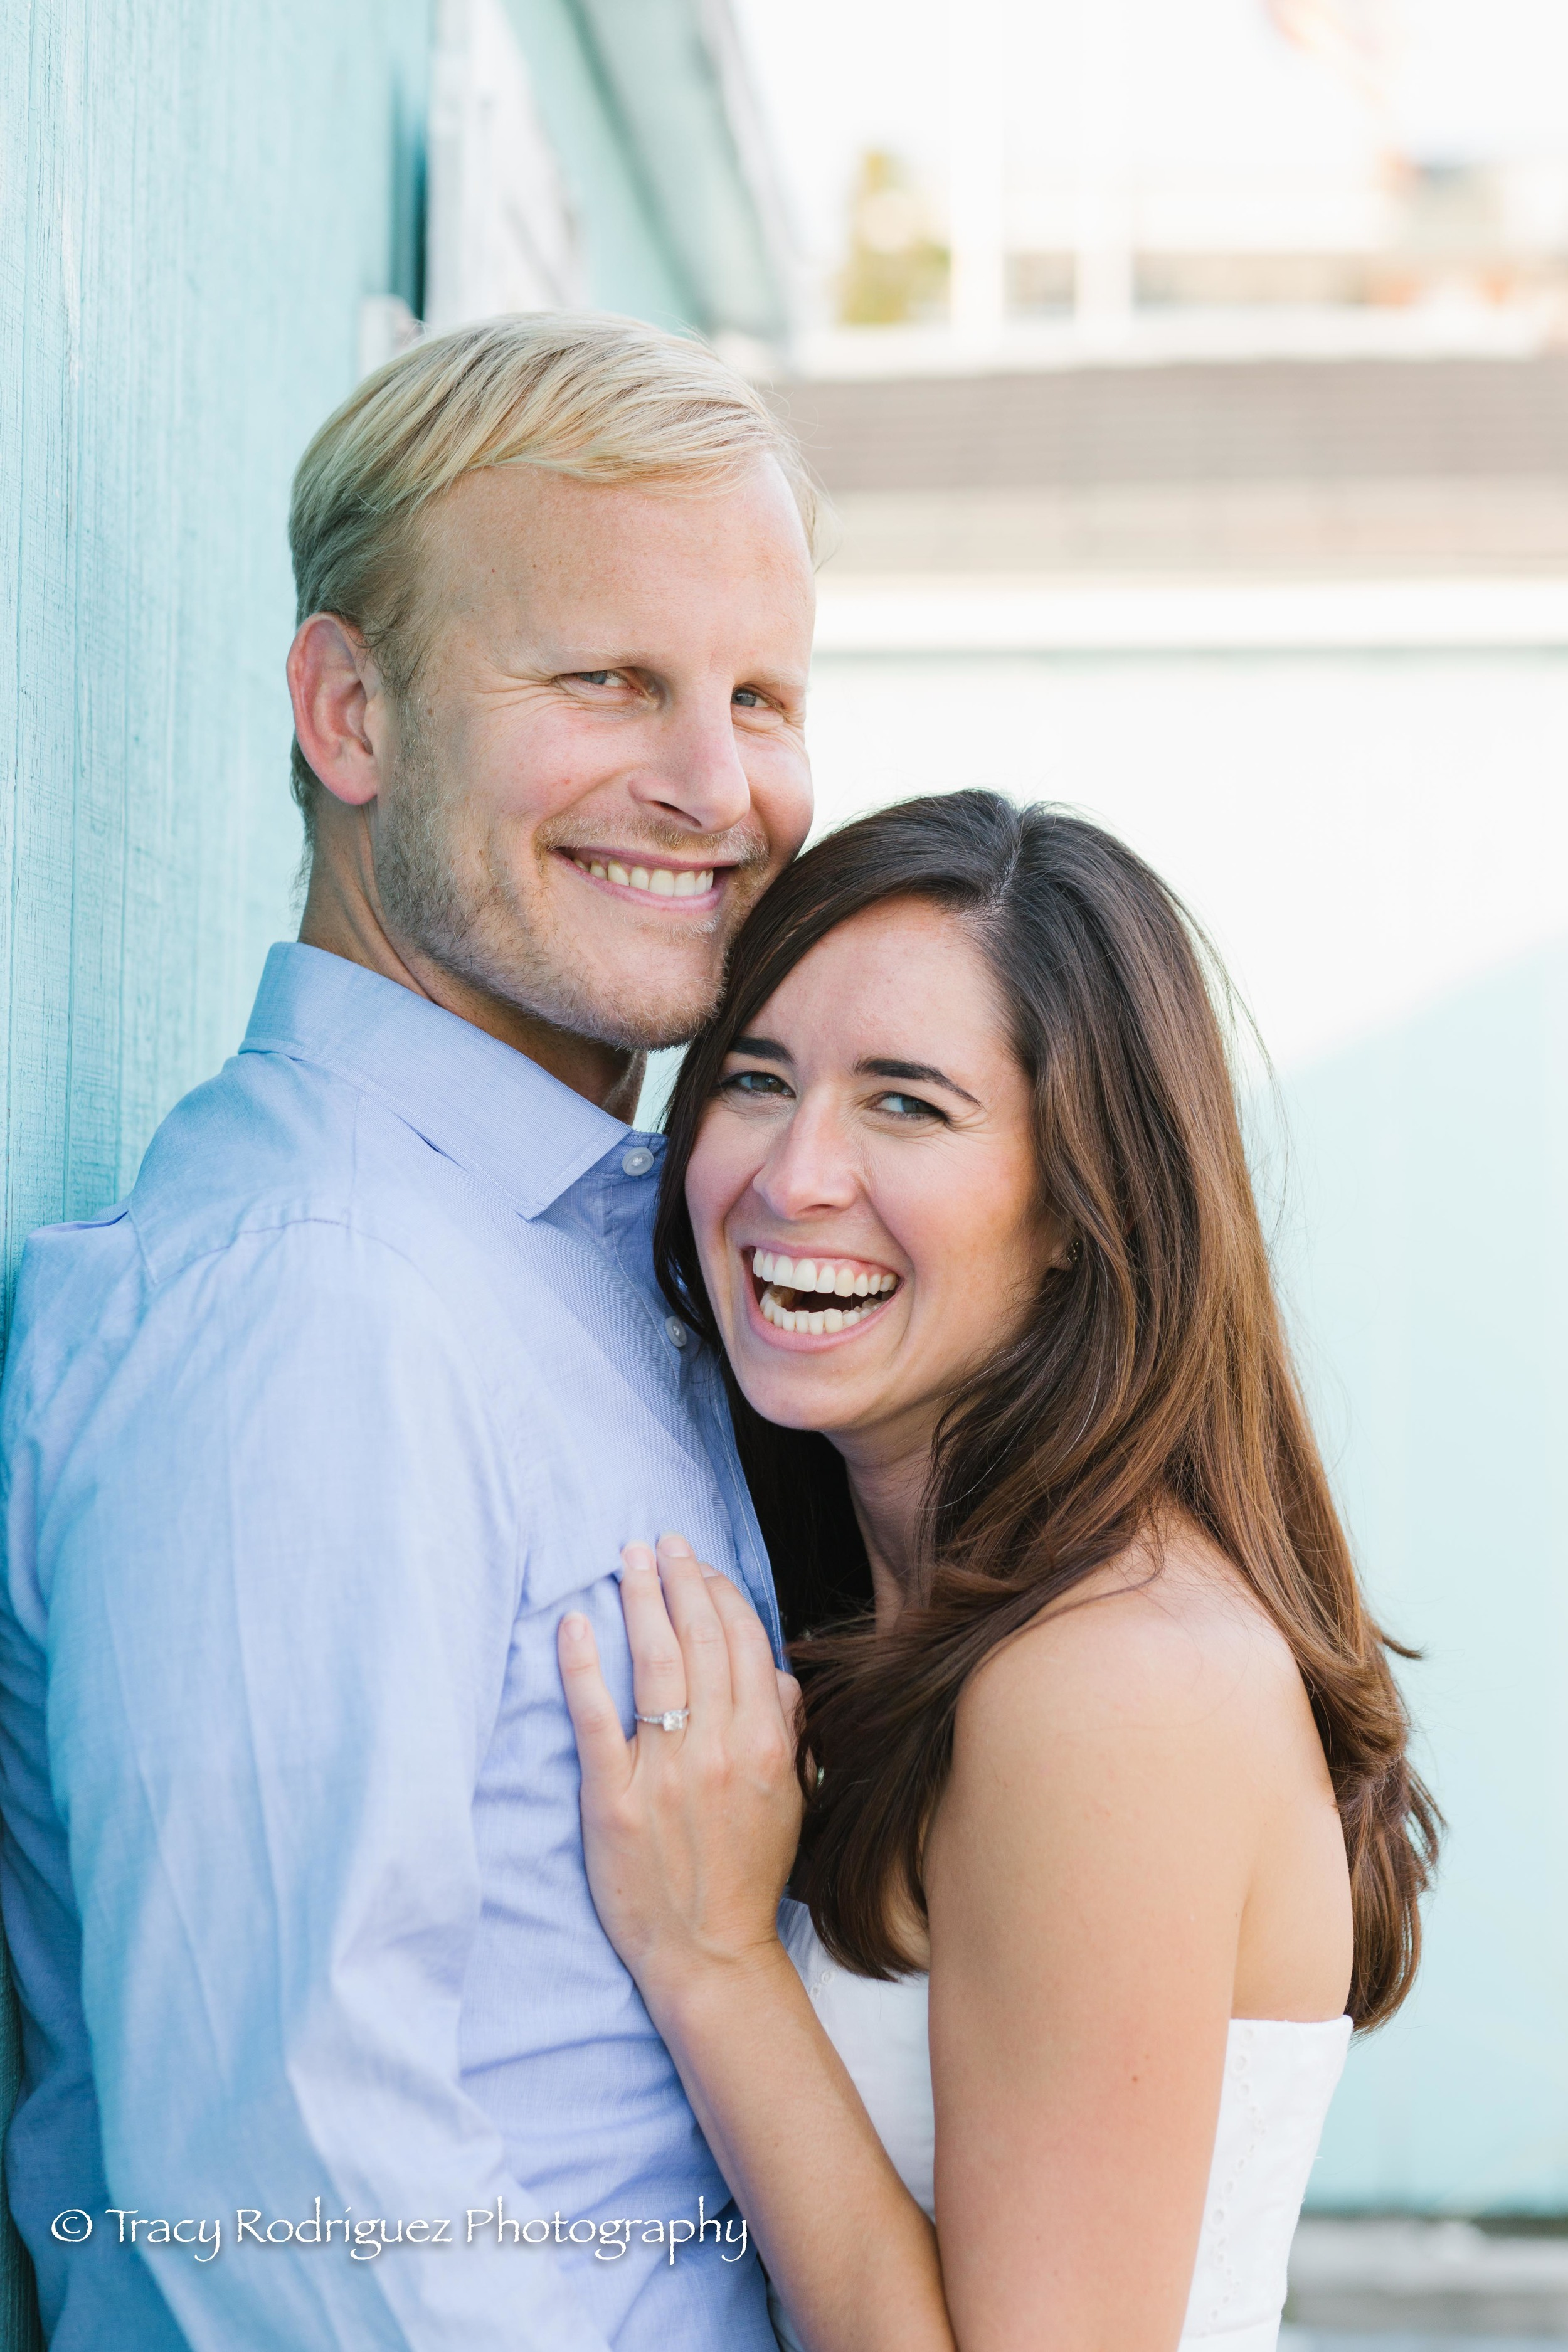 TracyRodriguezPhotography-Engagement-LowRes-1.jpg